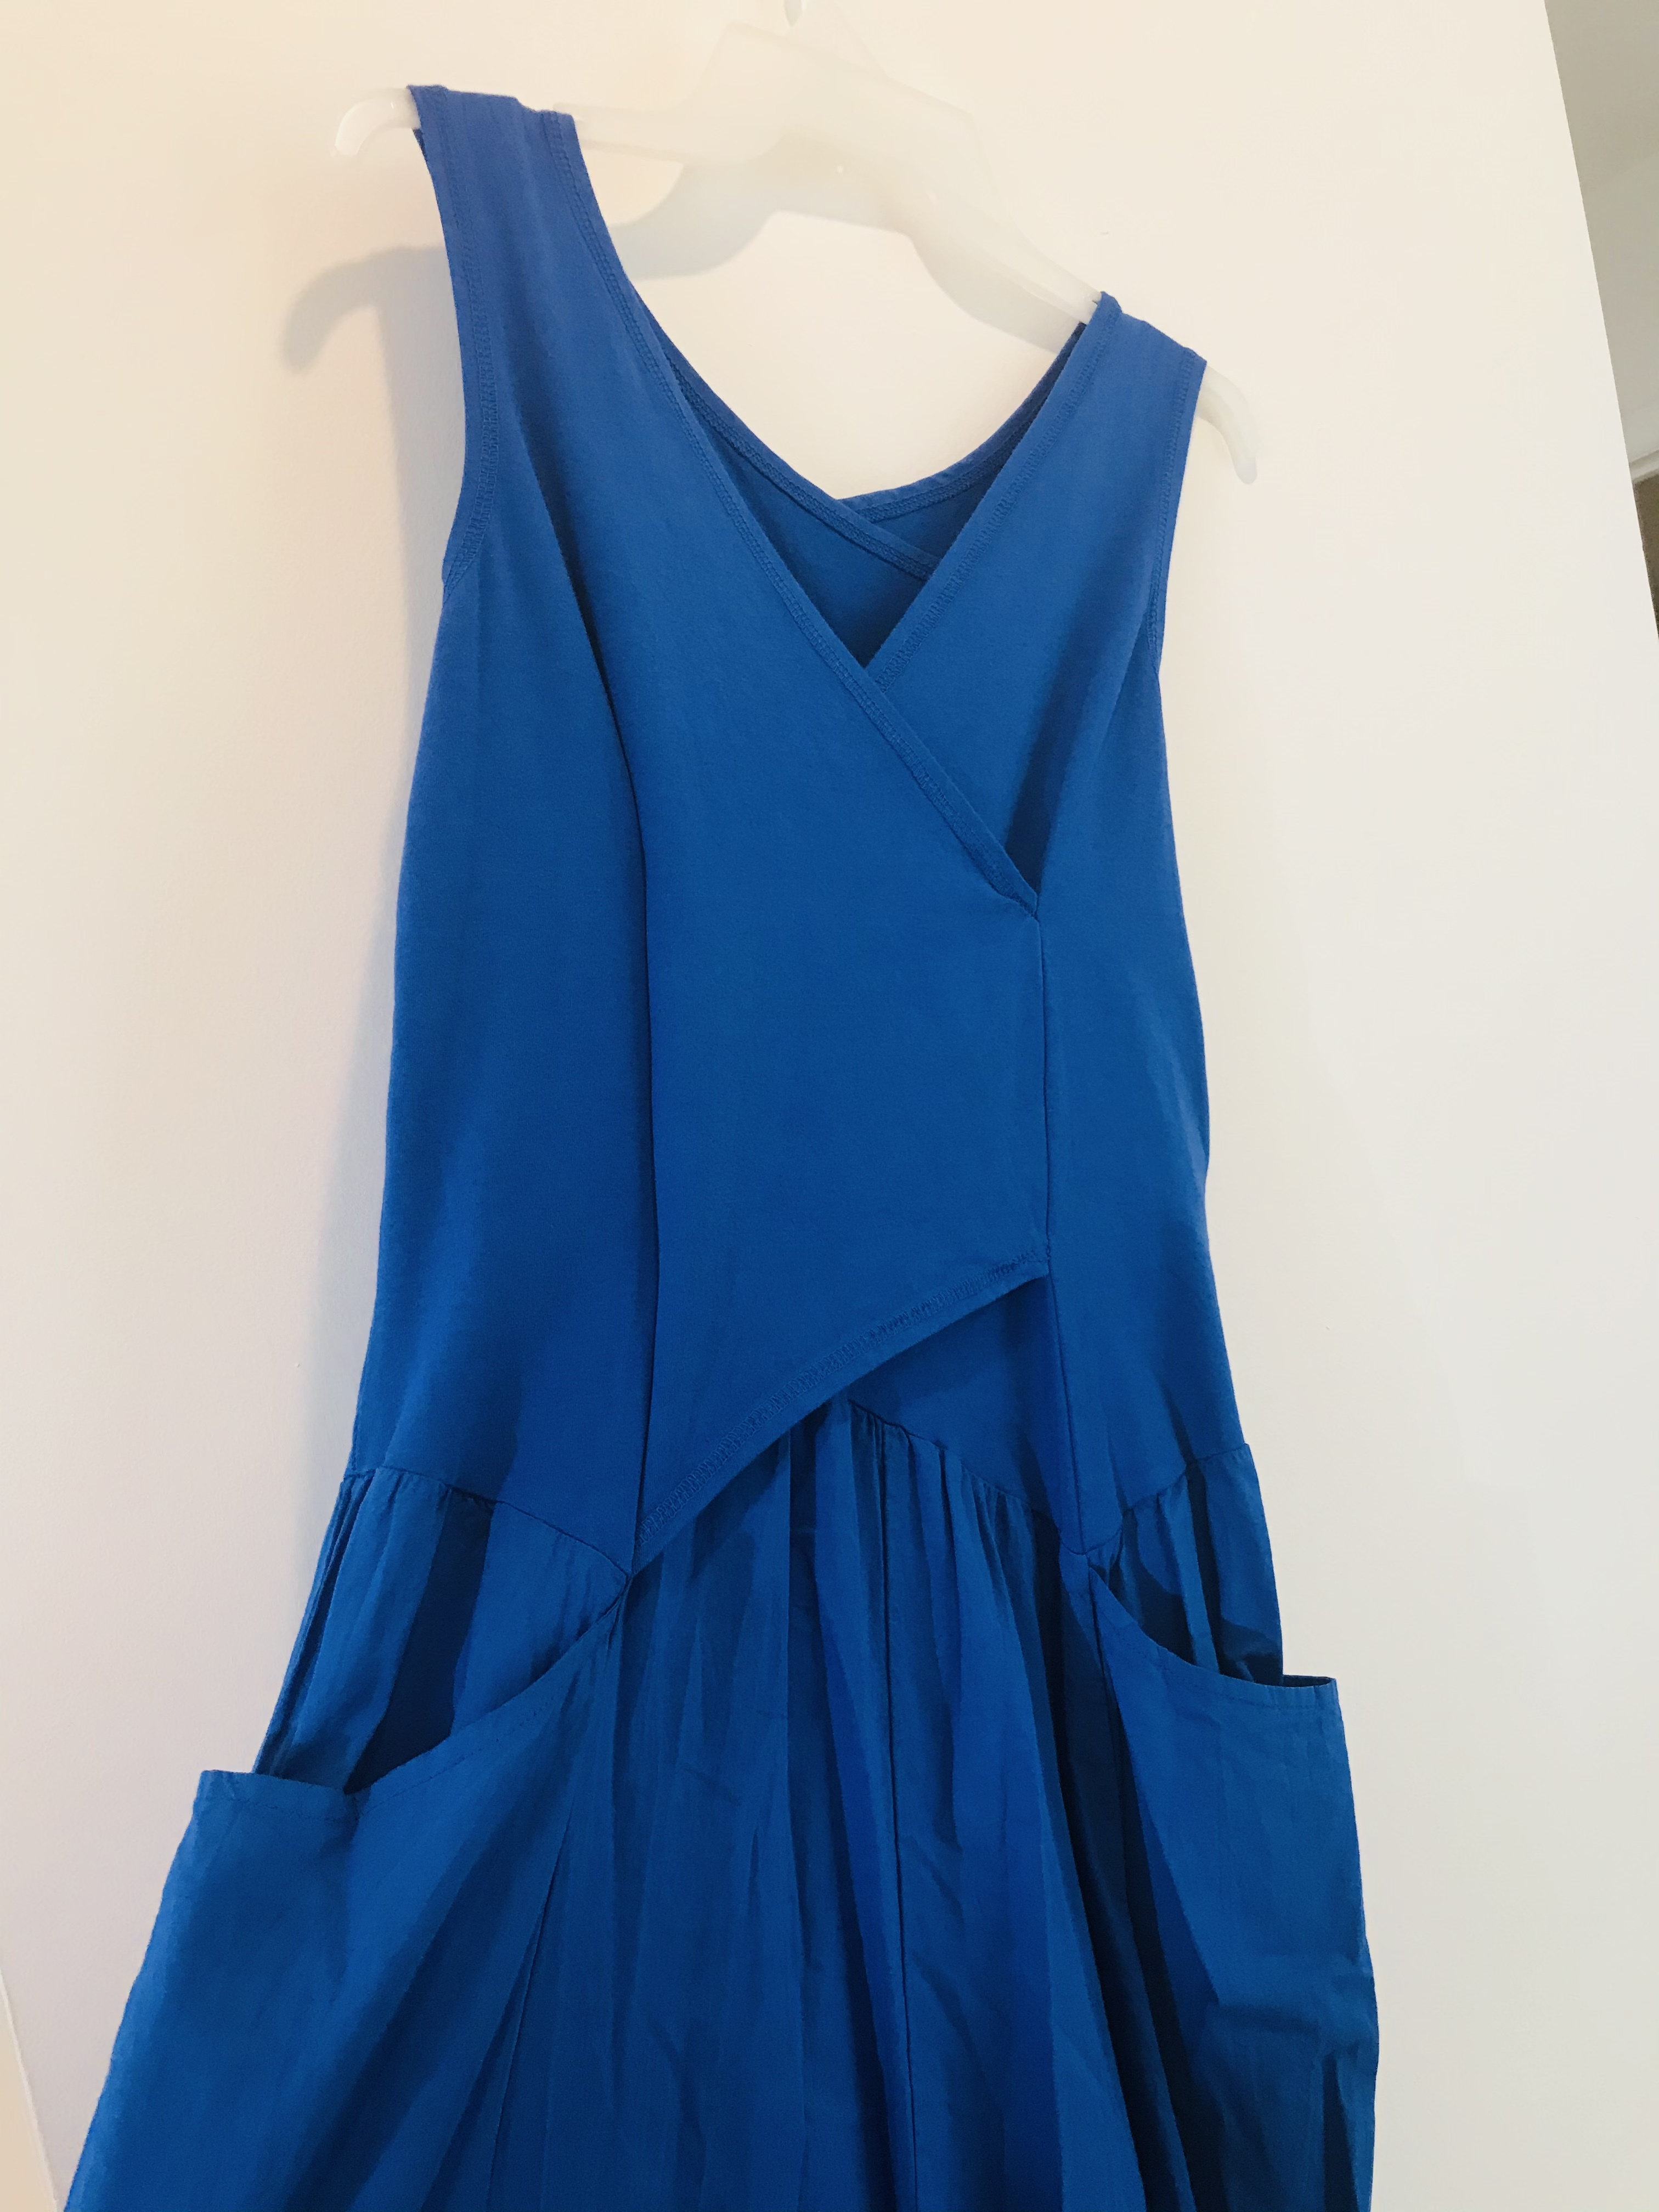 Luna Luz: Cross Over Bodice Maxi Dress (Ships Immed in Electric Blue, 1 Left!) LL_516_Electric_Blue_N